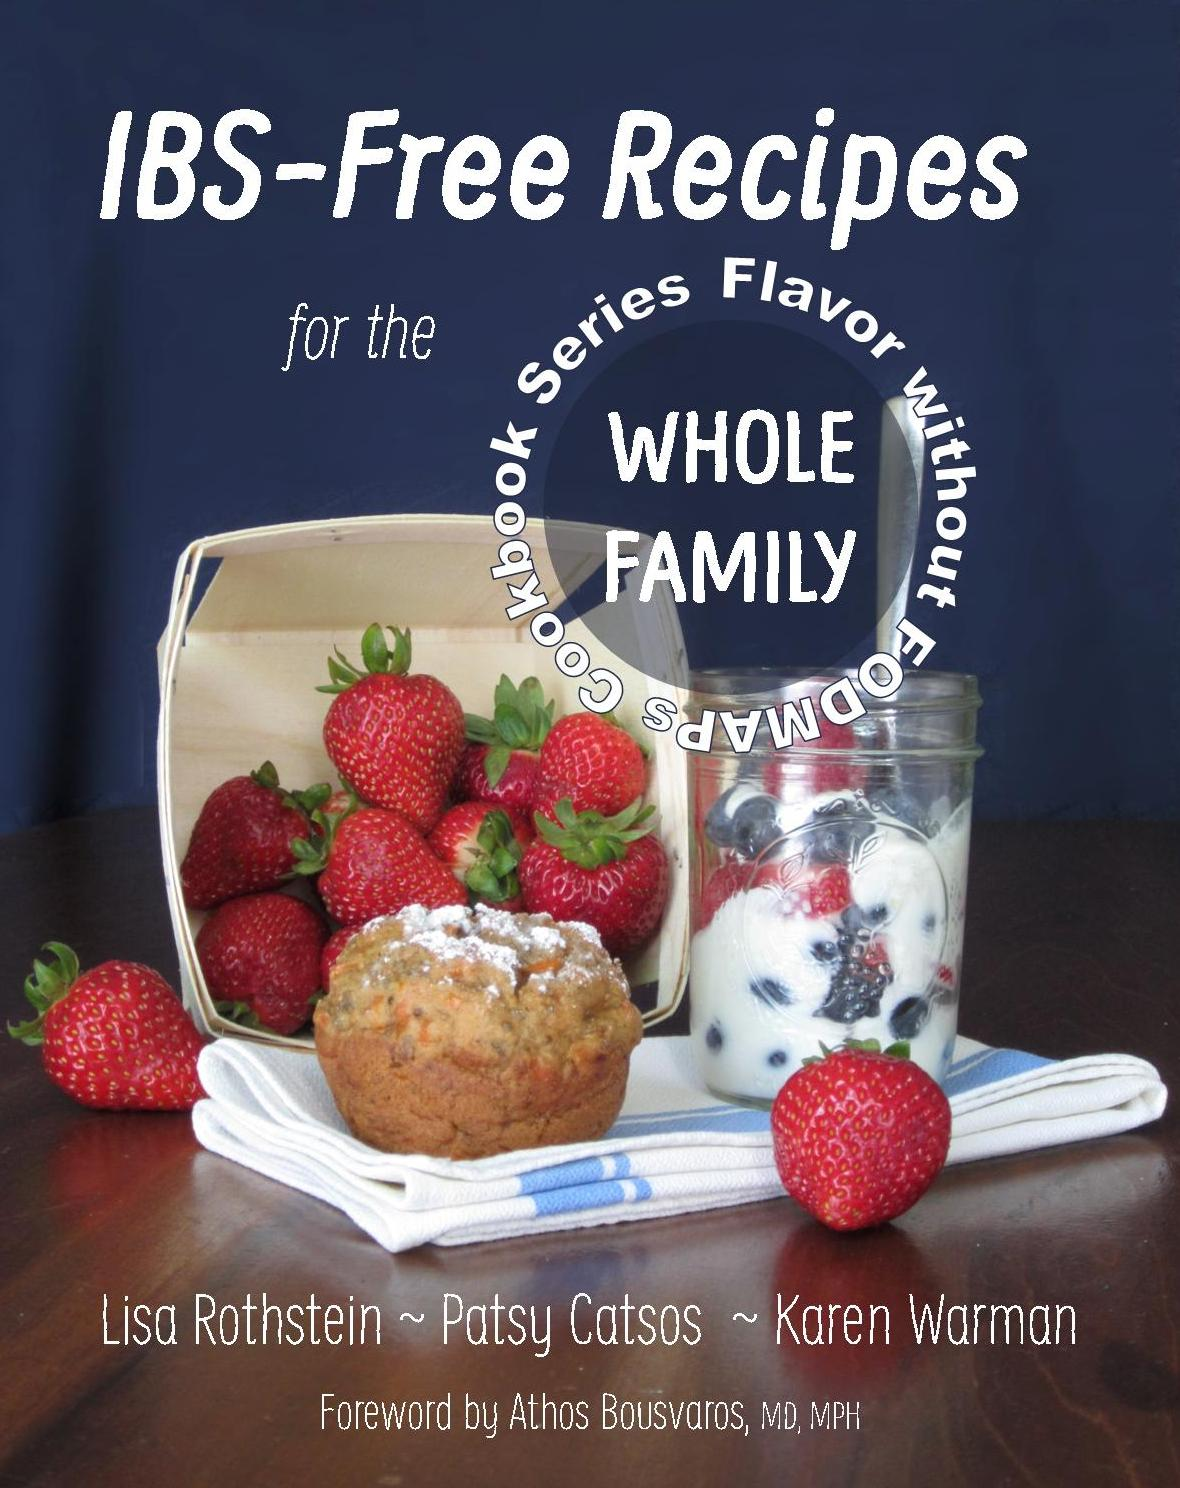 IBS-Free Recipes for the Whole Family